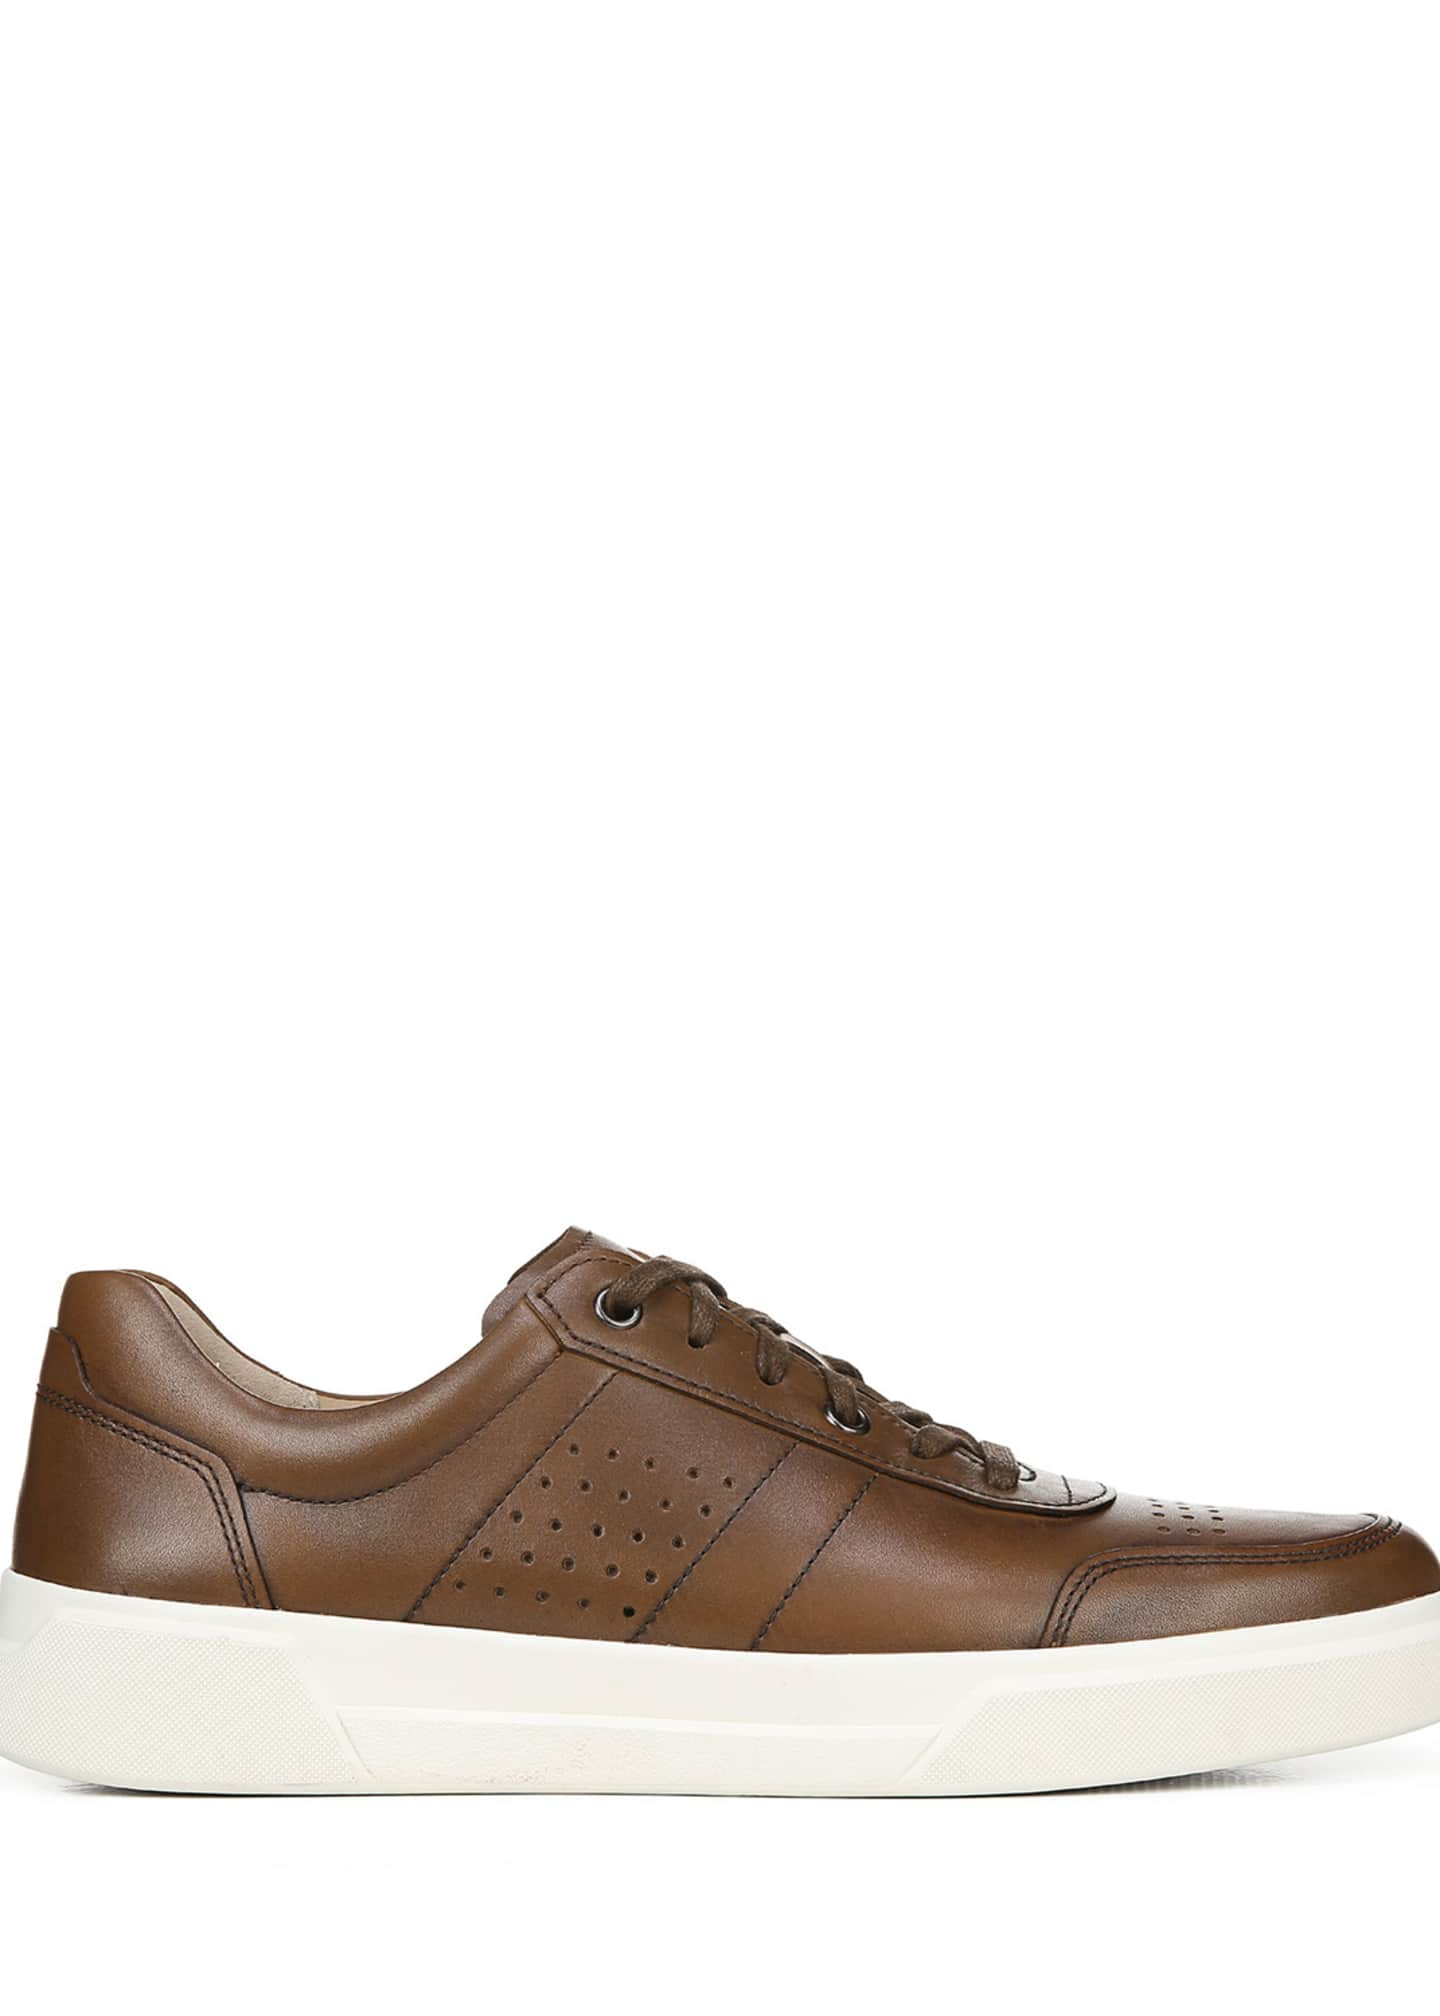 Image 3 of 5: Men's Barnett Perforated Leather Low-Top Sneakers